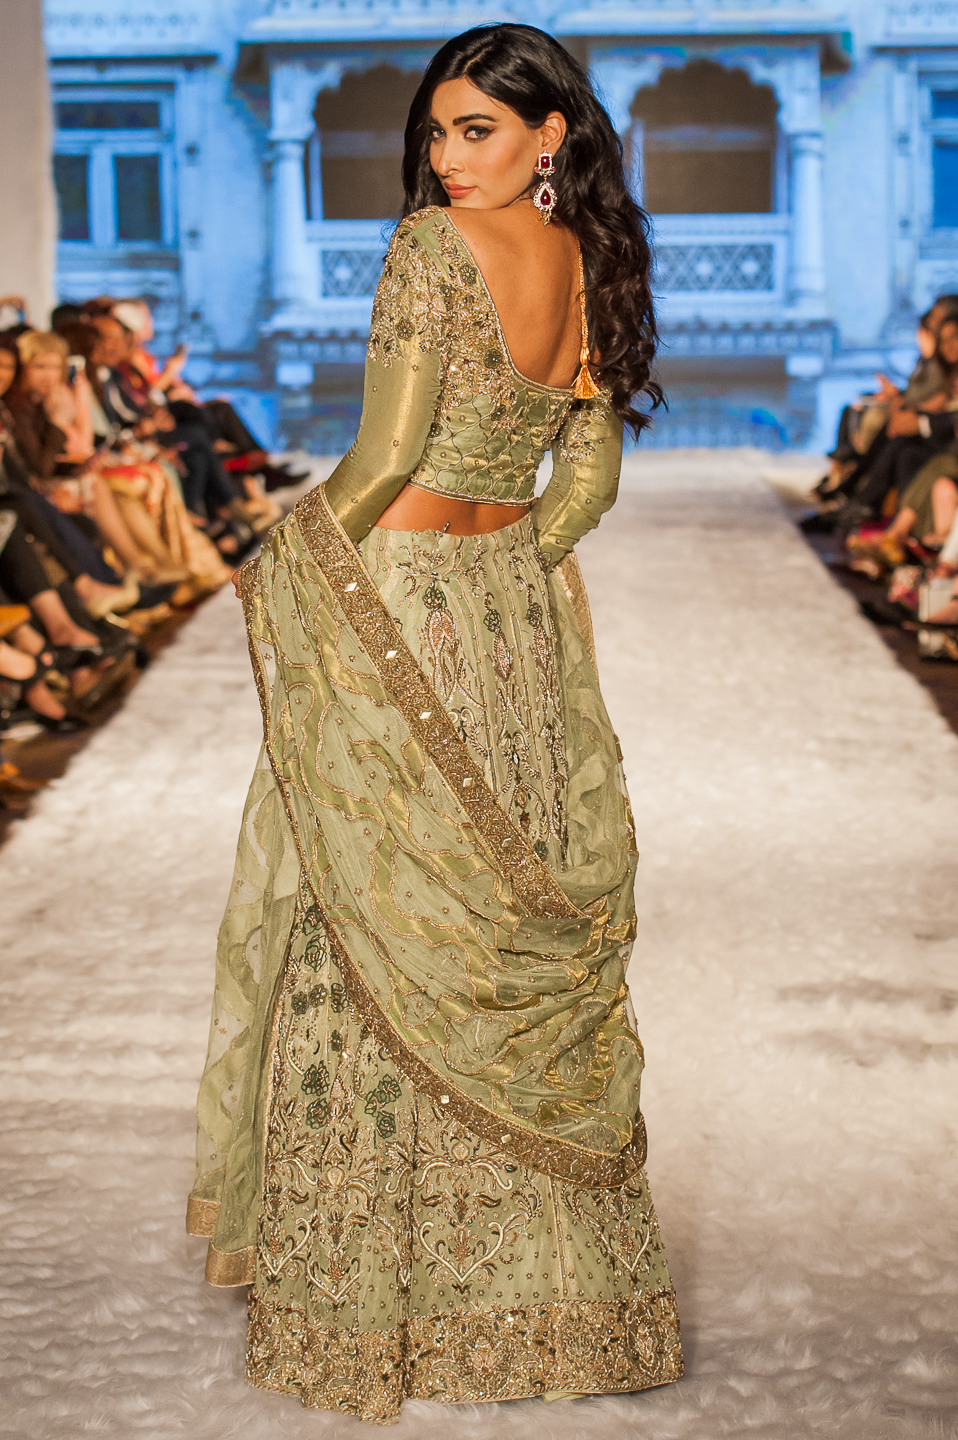 Shazia Kiyani - Pakistan Fashion Week London - Photography by Shahid Malik